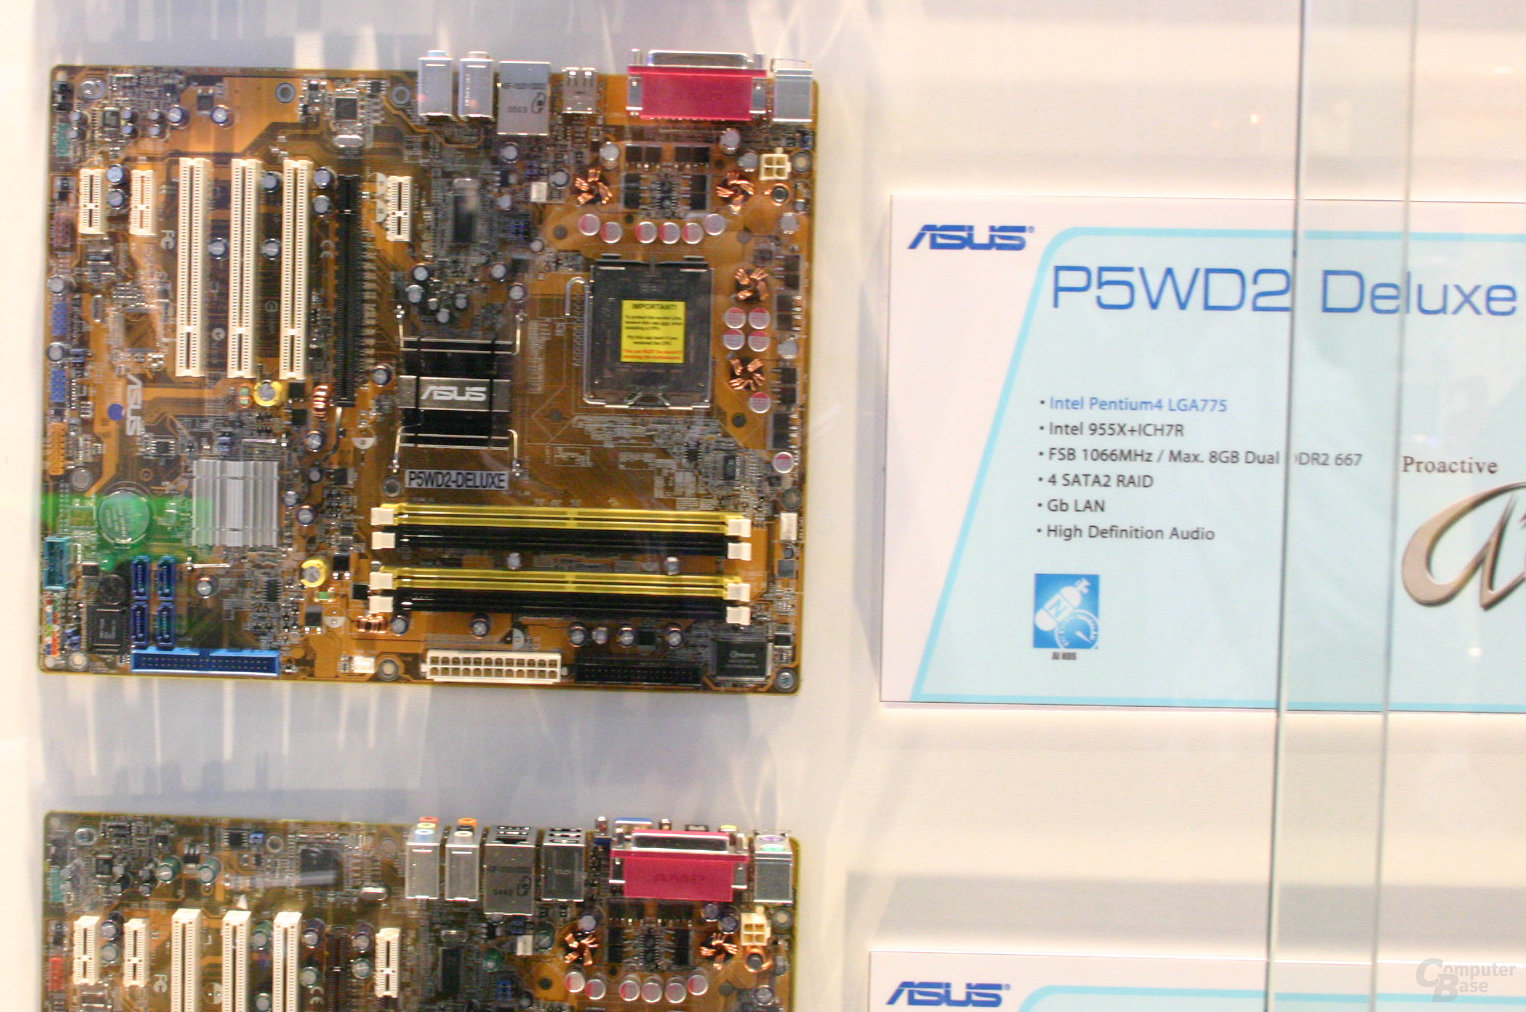 Asus P5WD2 Deluxe